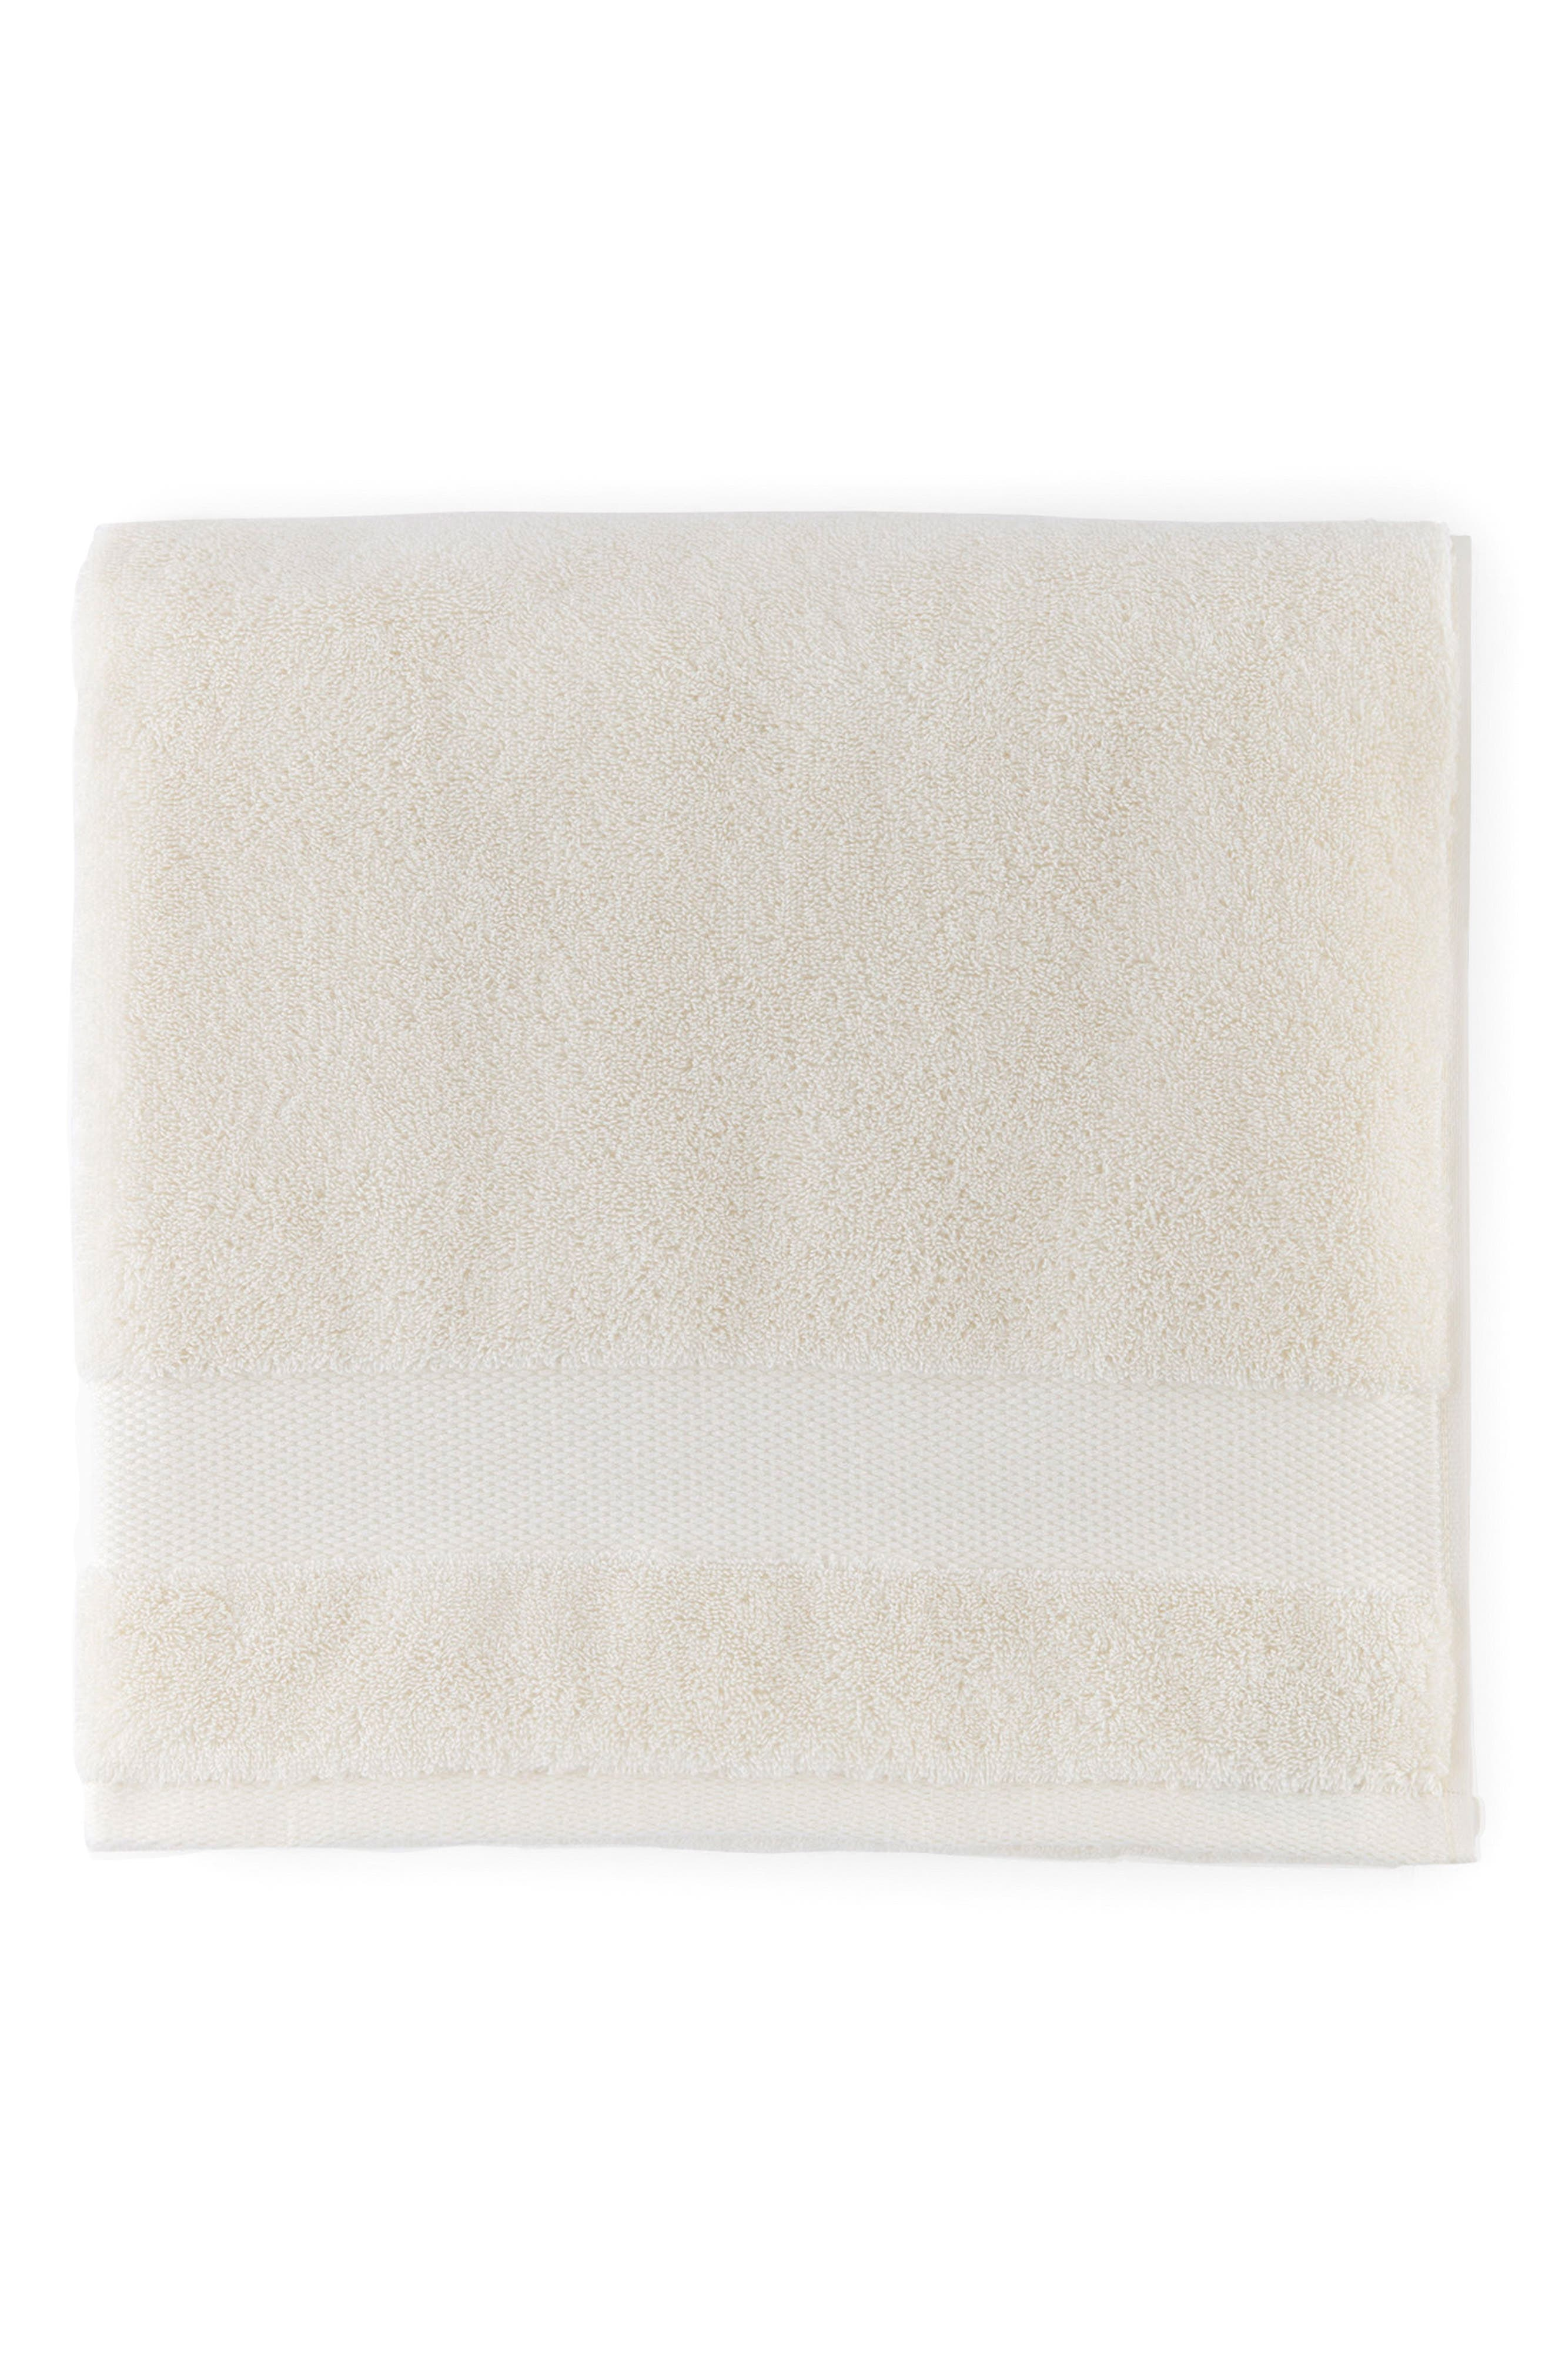 Bello Tip Towel,                         Main,                         color, Ivory